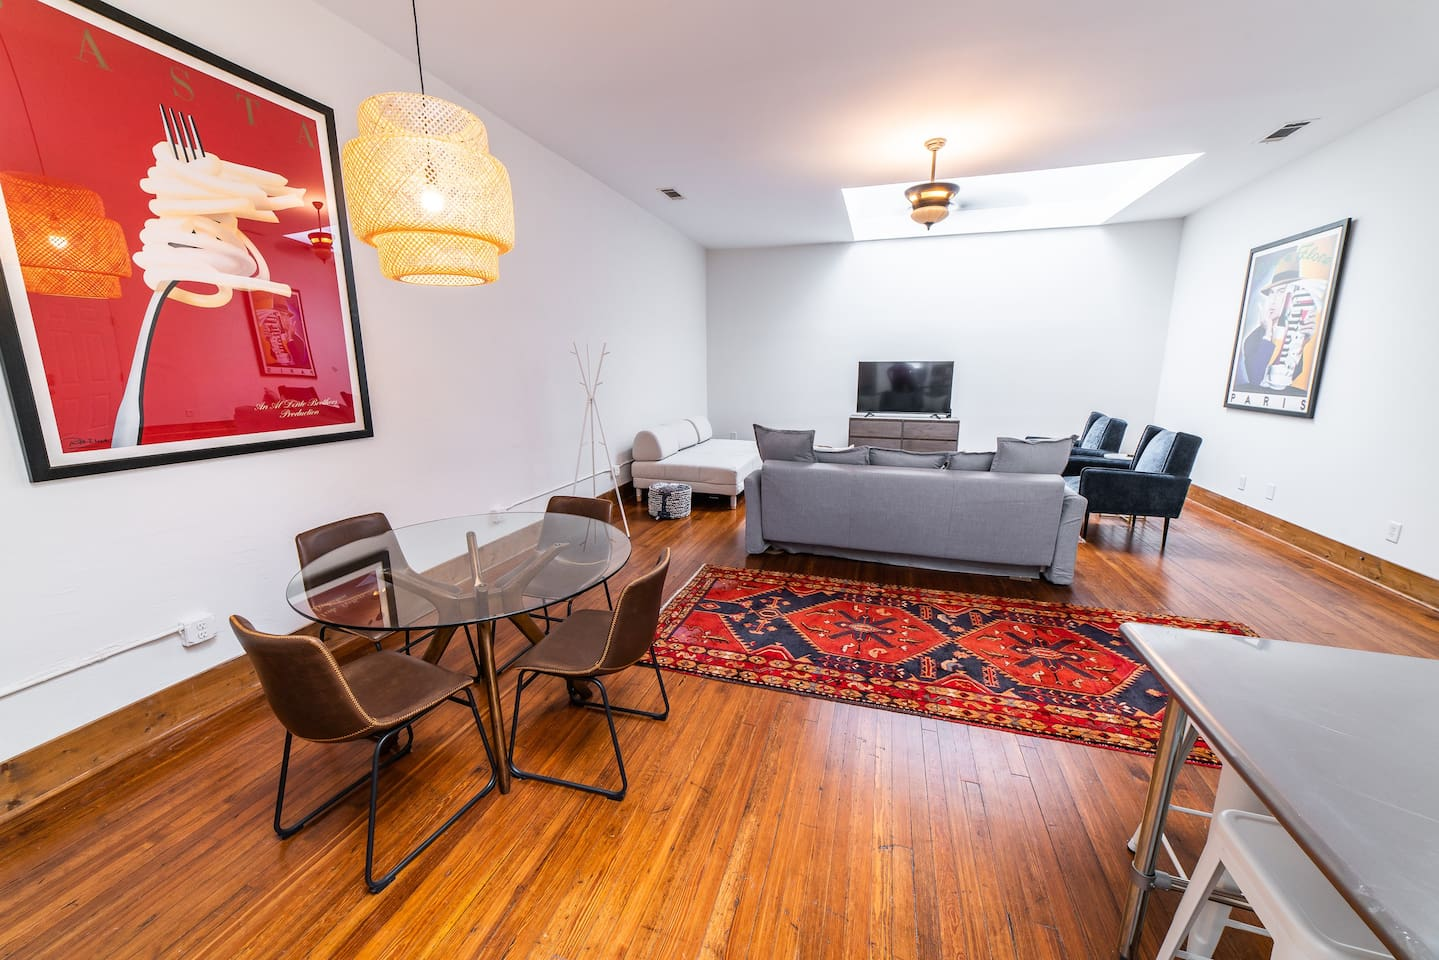 Spacious 2BR/2BA loft with an open floor plan in the heart of Uptown Columbus, Georgia.